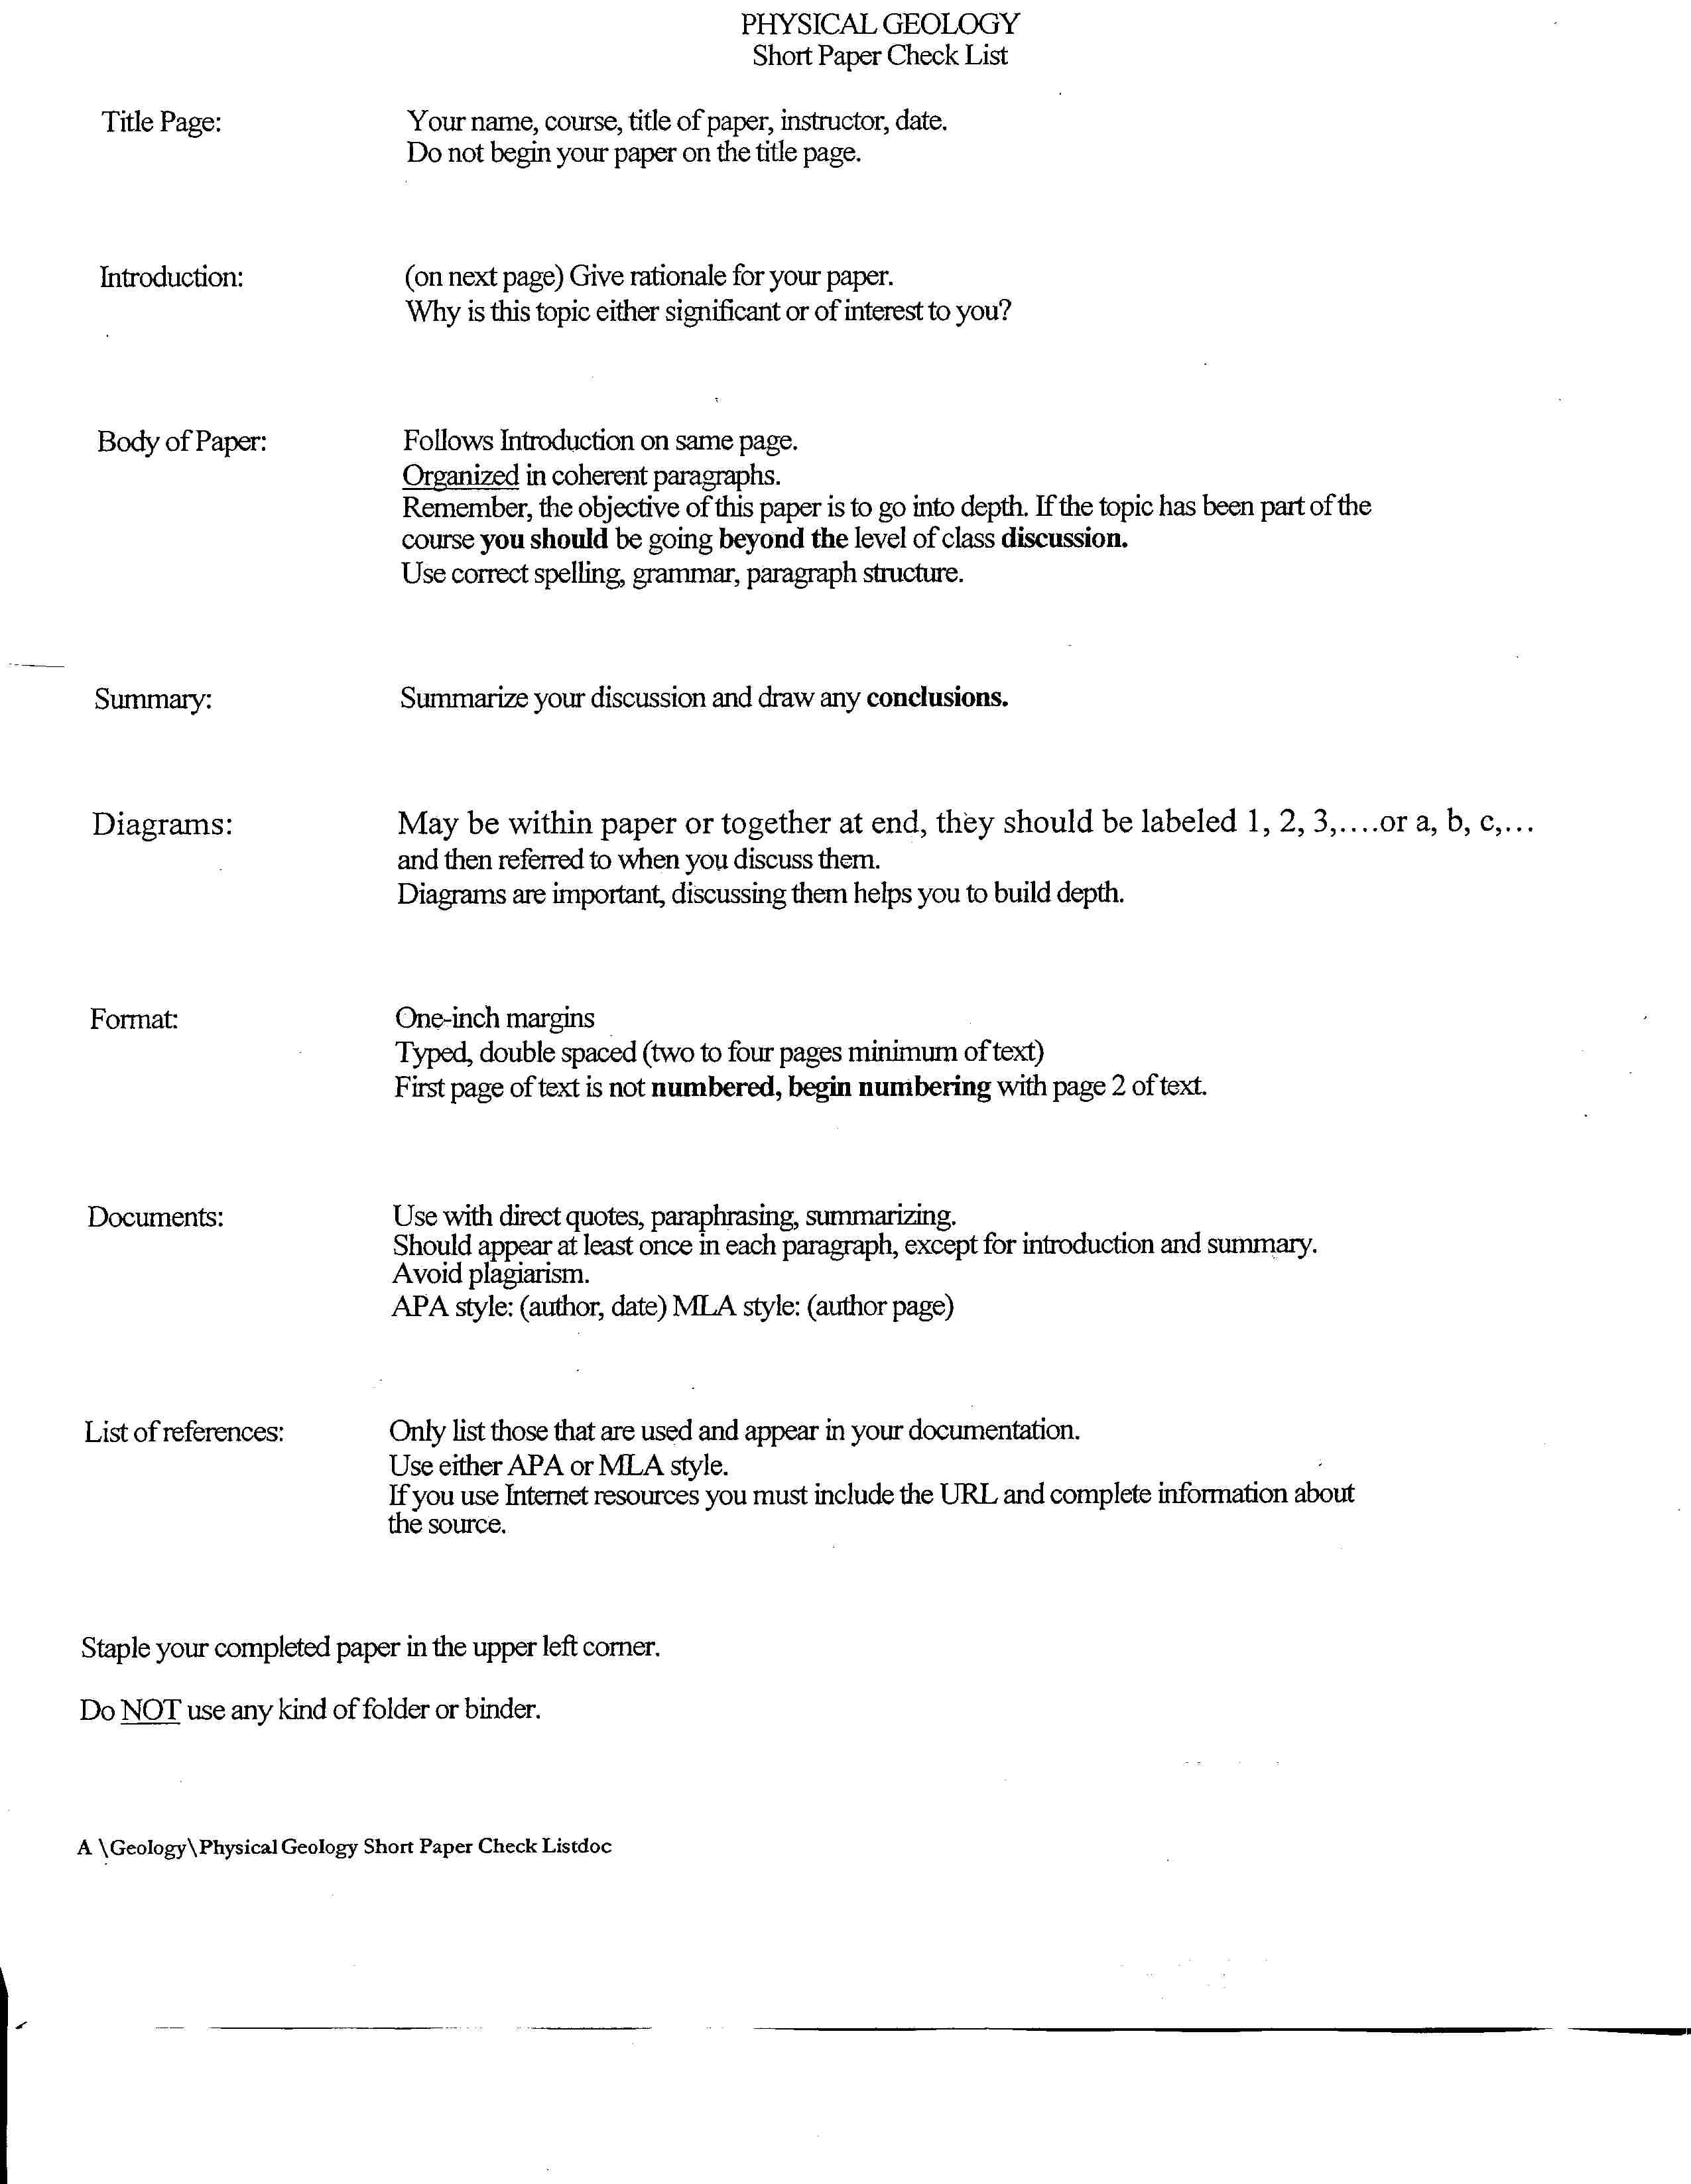 007 Research Paper Short Checklist Topics For Stupendous College Writing Argumentative Full